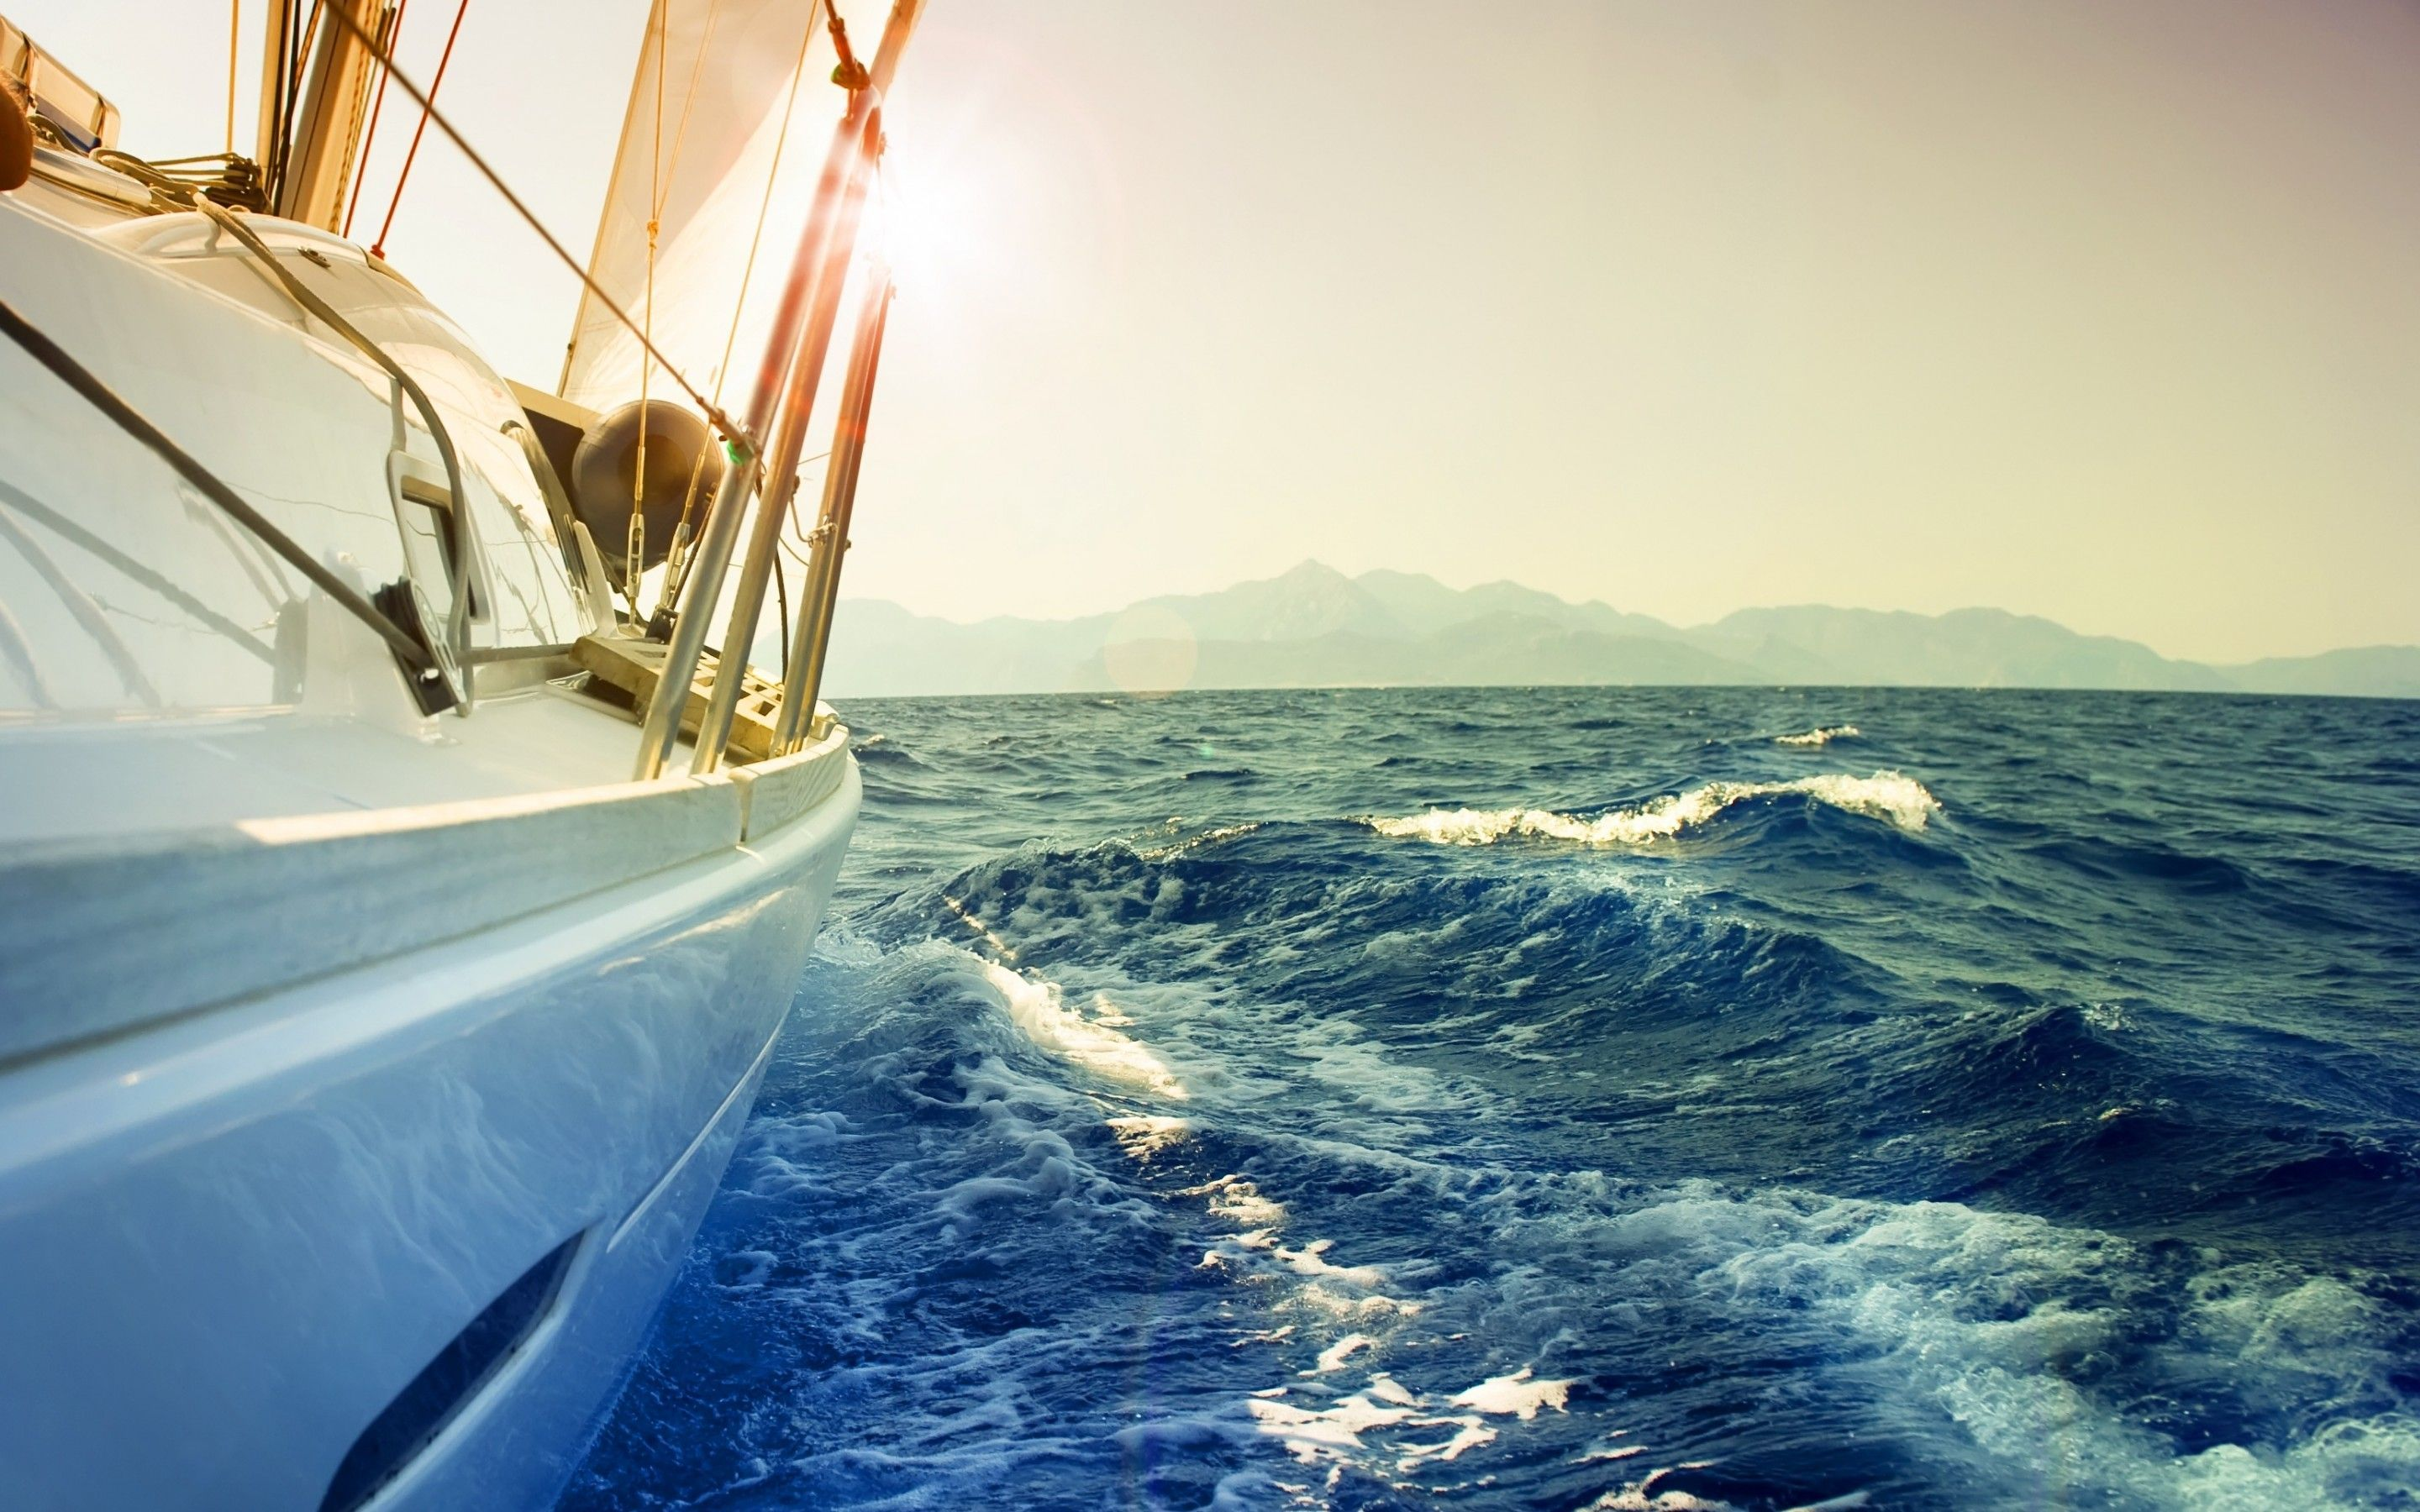 Yacht Boat Wallpapers Top Free Yacht Boat Backgrounds Wallpaperaccess